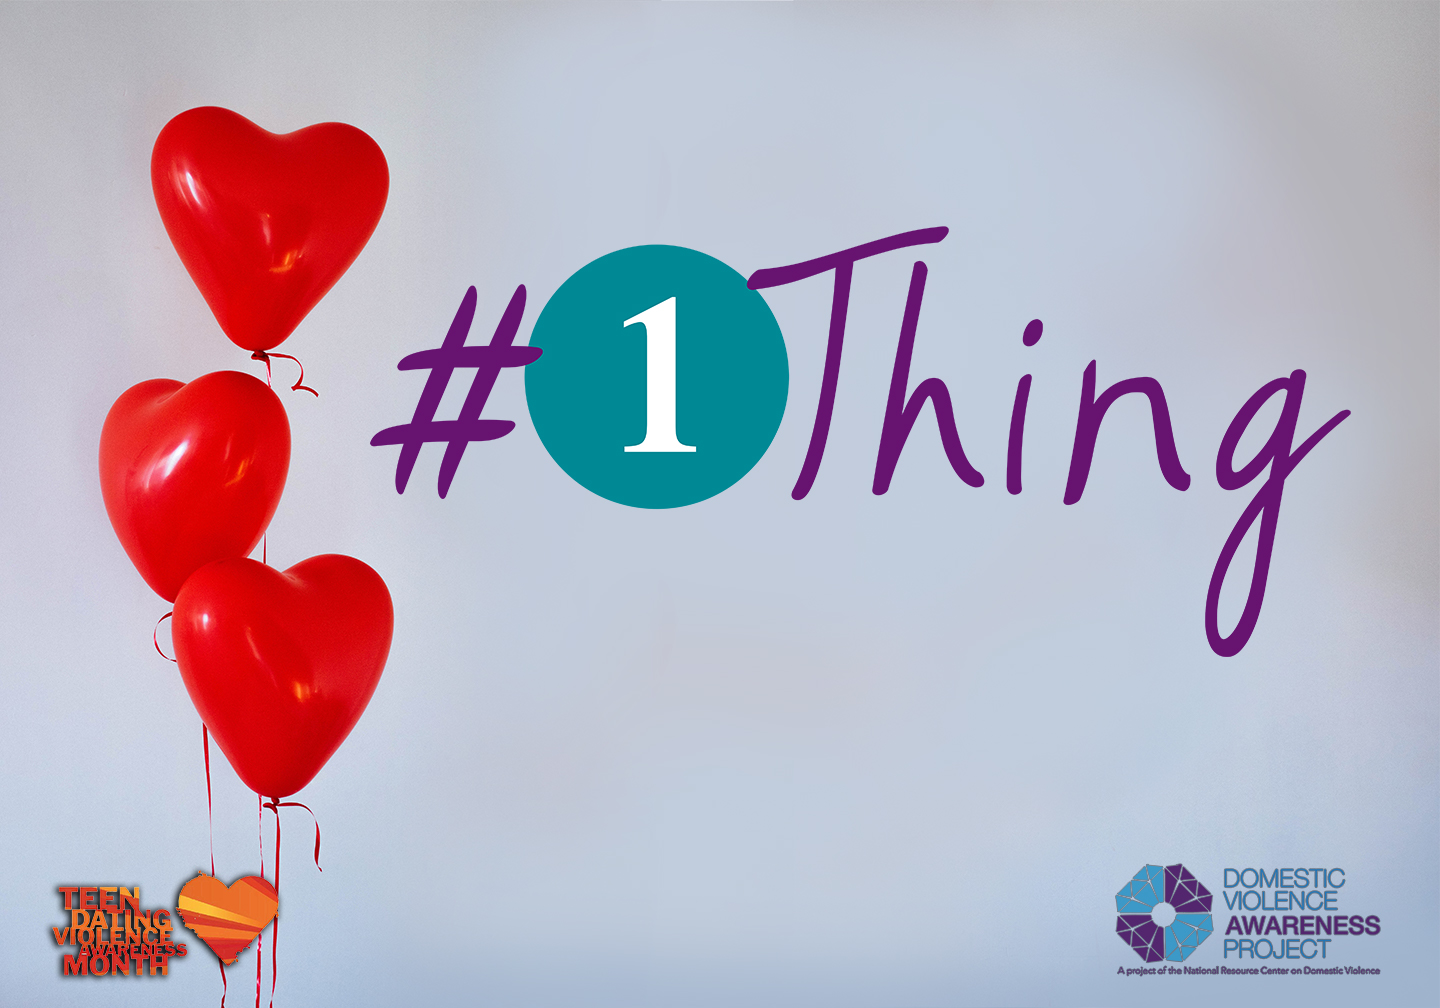 #1Thing logo imposed over image of red heart balloons